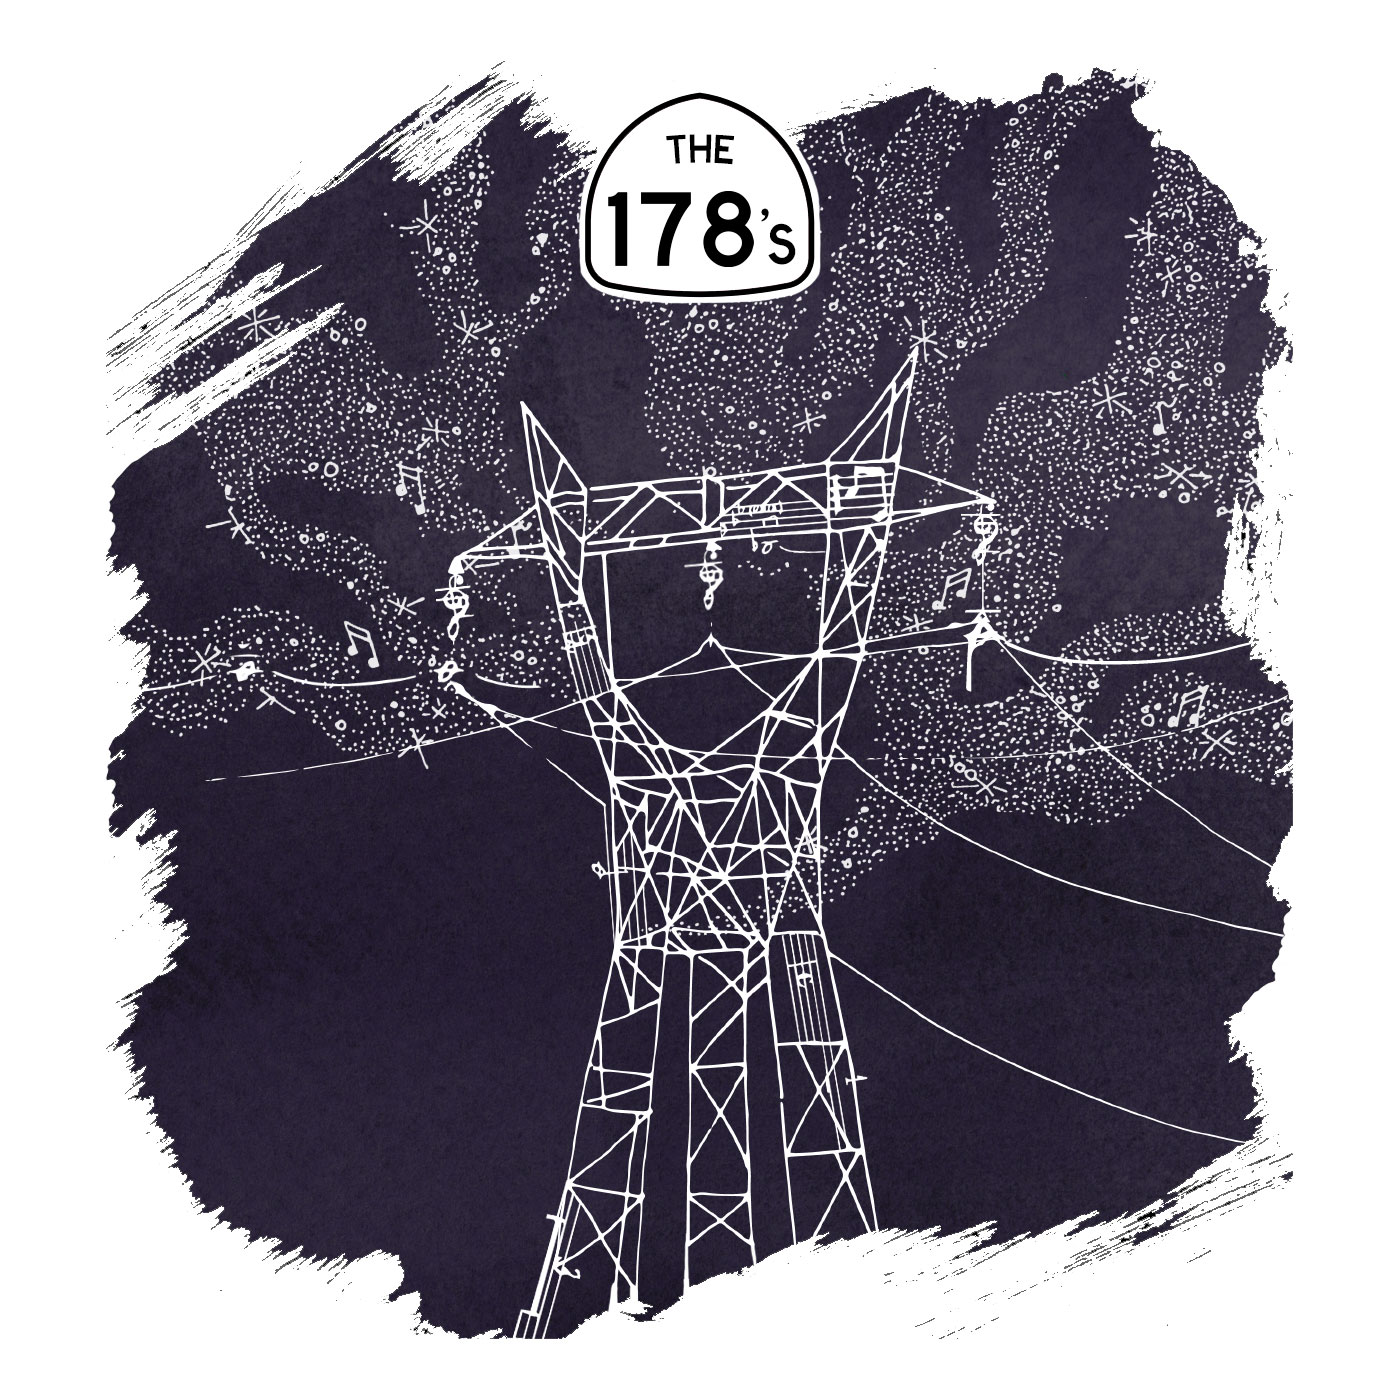 The 178's;  Album cover illustrated & designed by Sean David Christensen